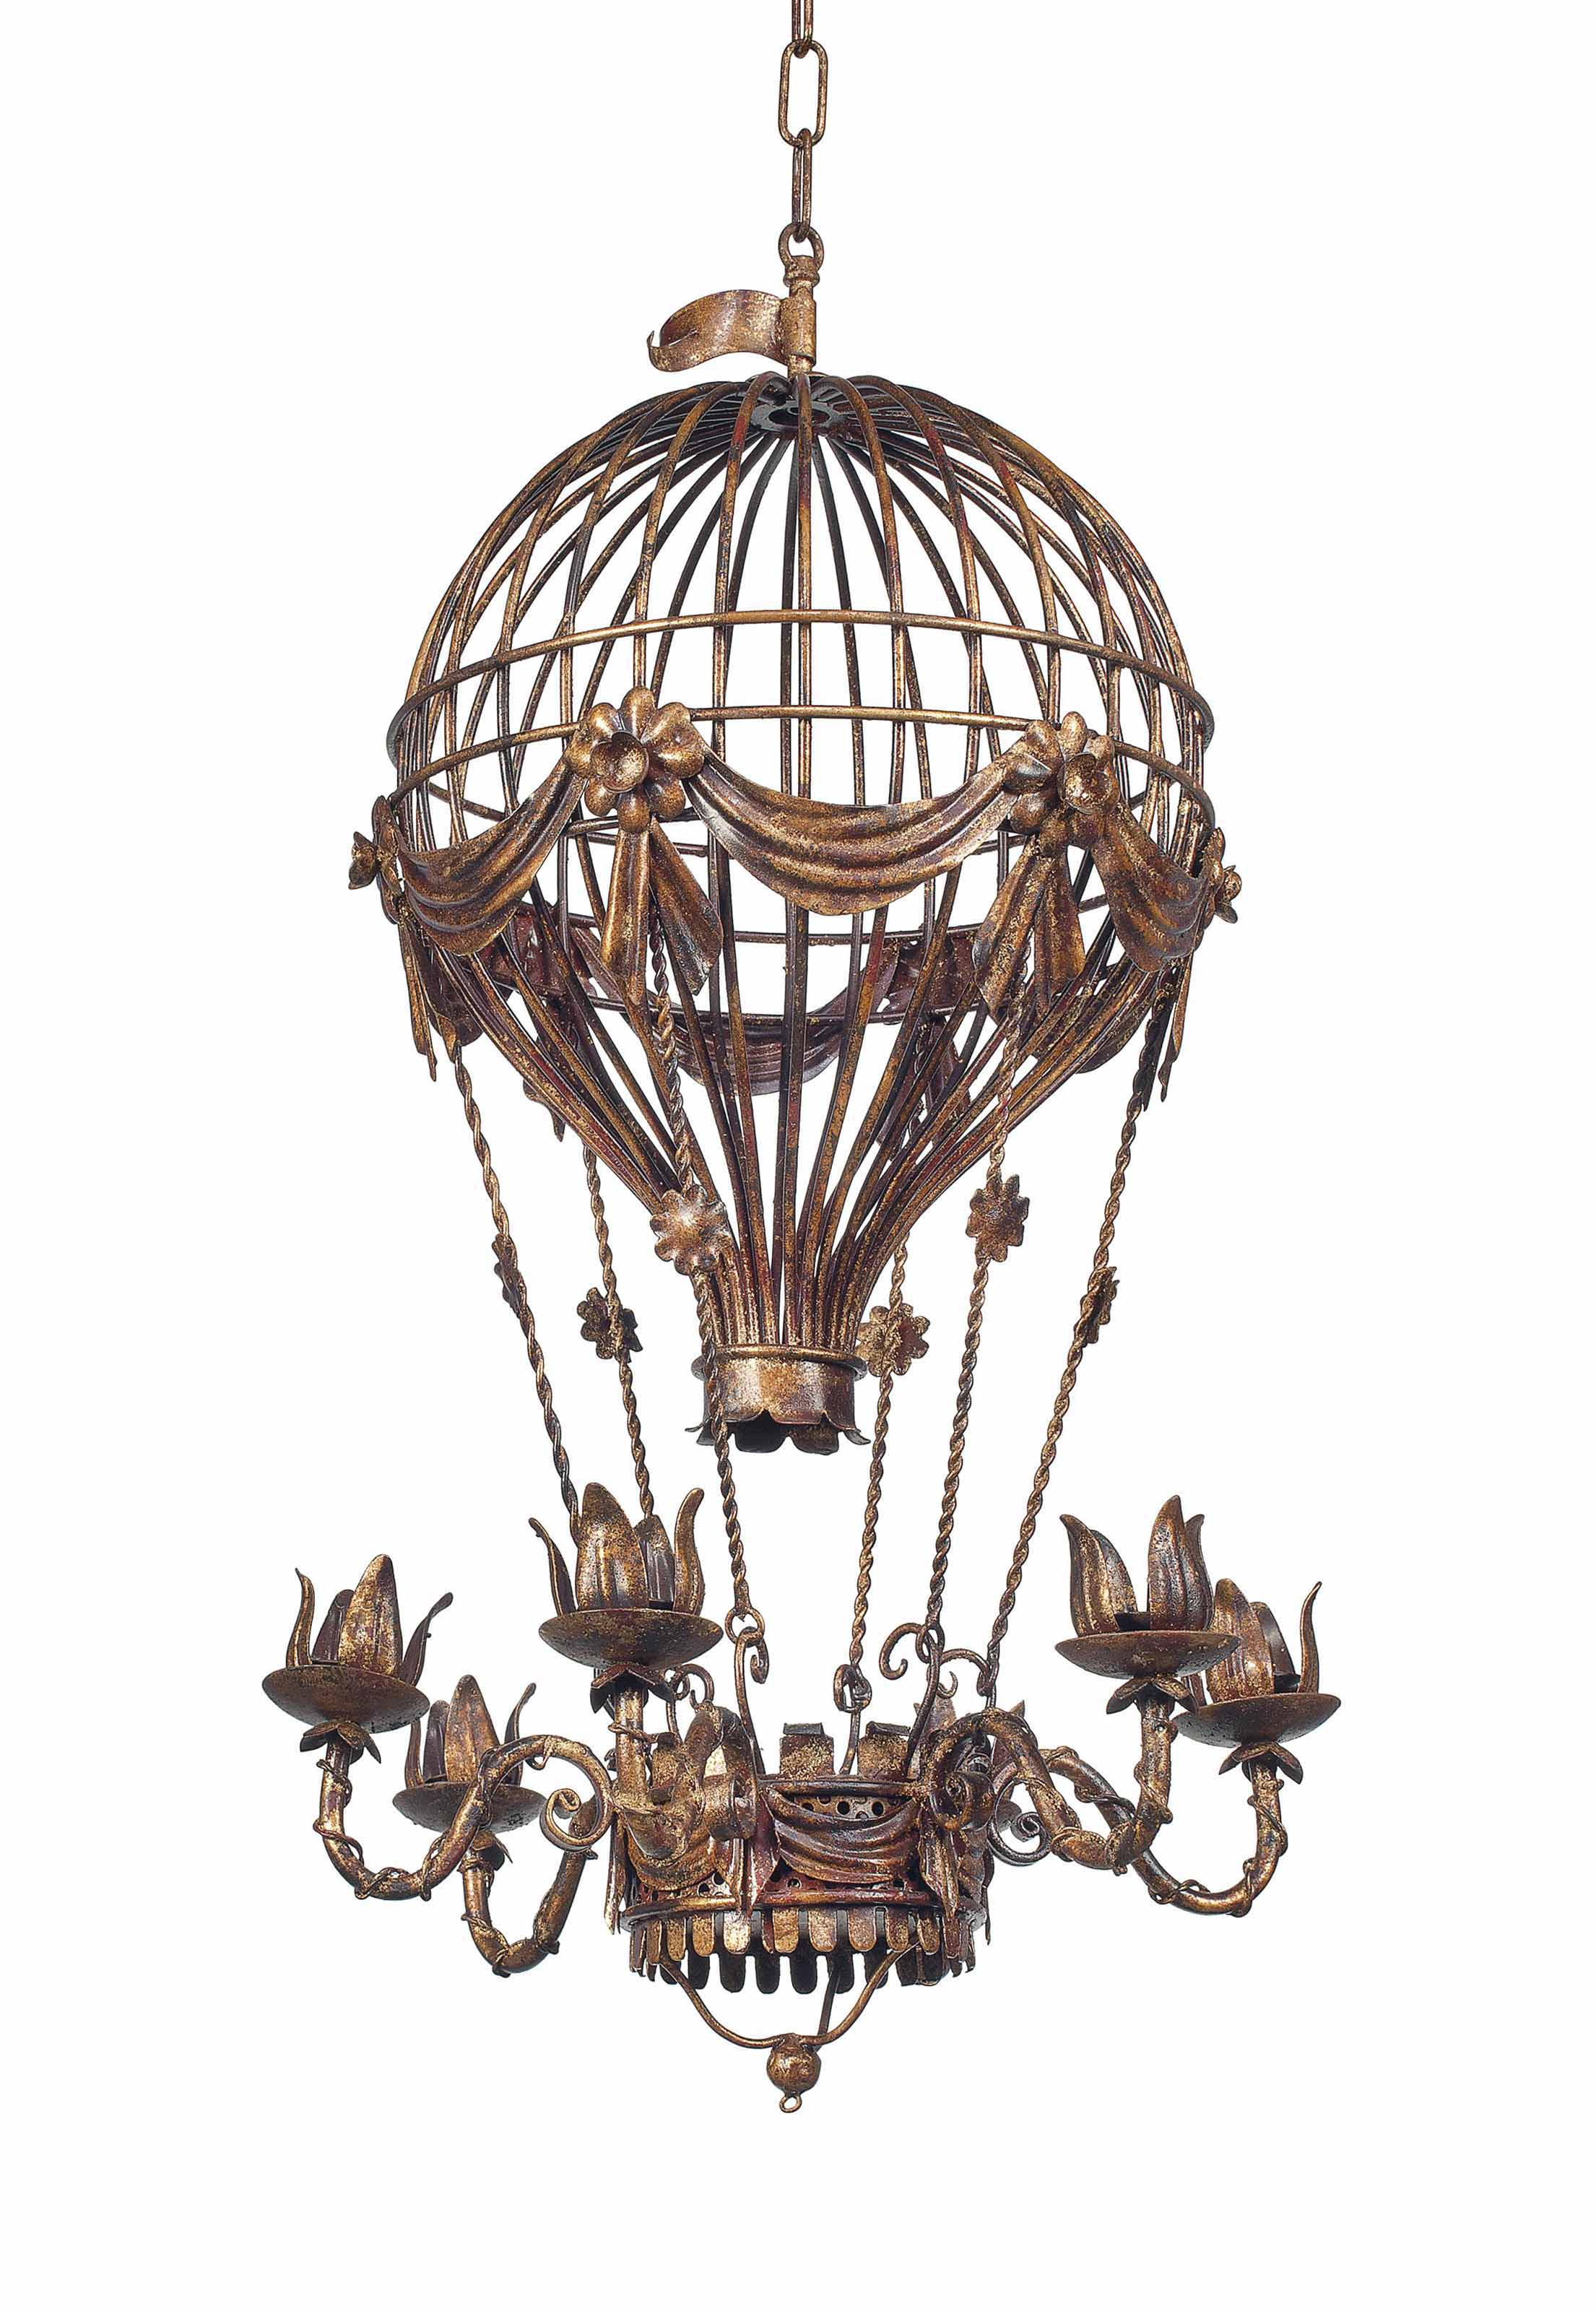 light design consignment chandelier p hot with air metal llc balloon